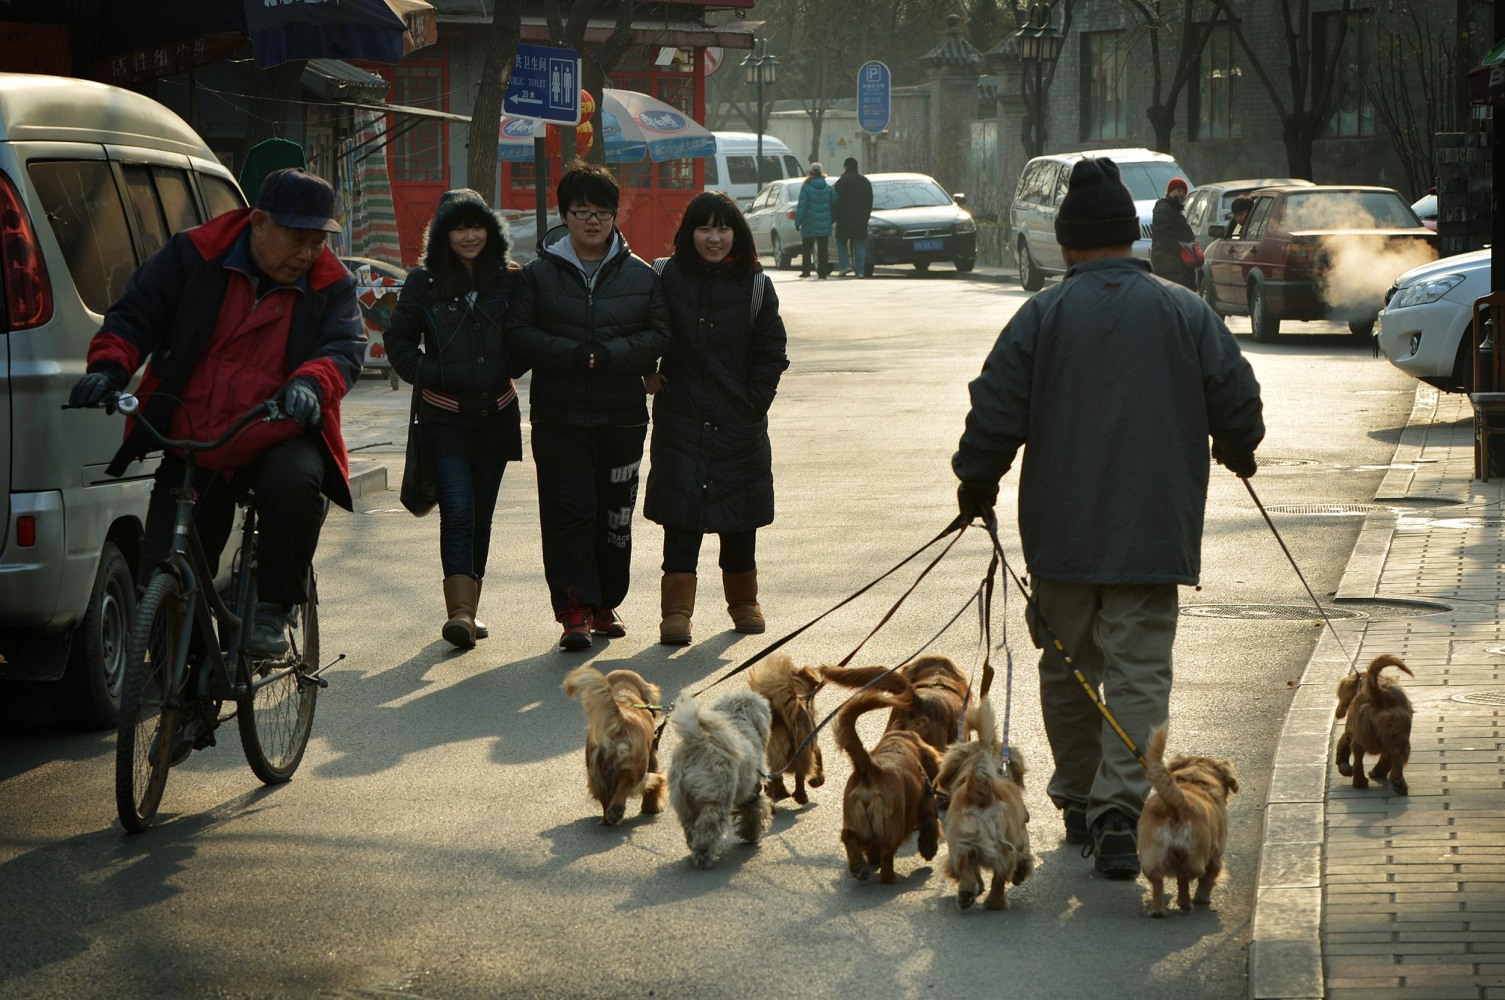 China Denounces Pet Dogs As Filthy Imports From The West